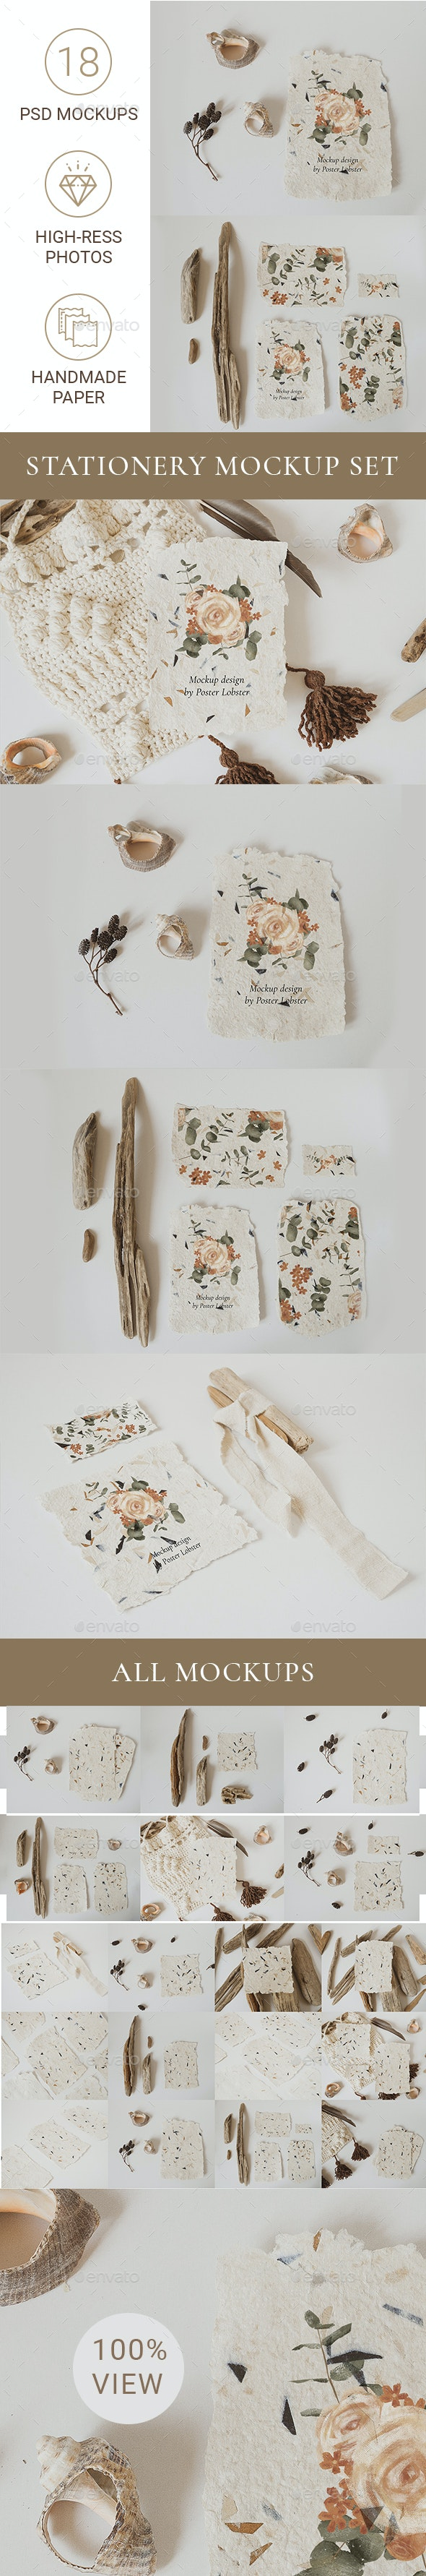 Boho Stationery Mockup Set - Stationery Print